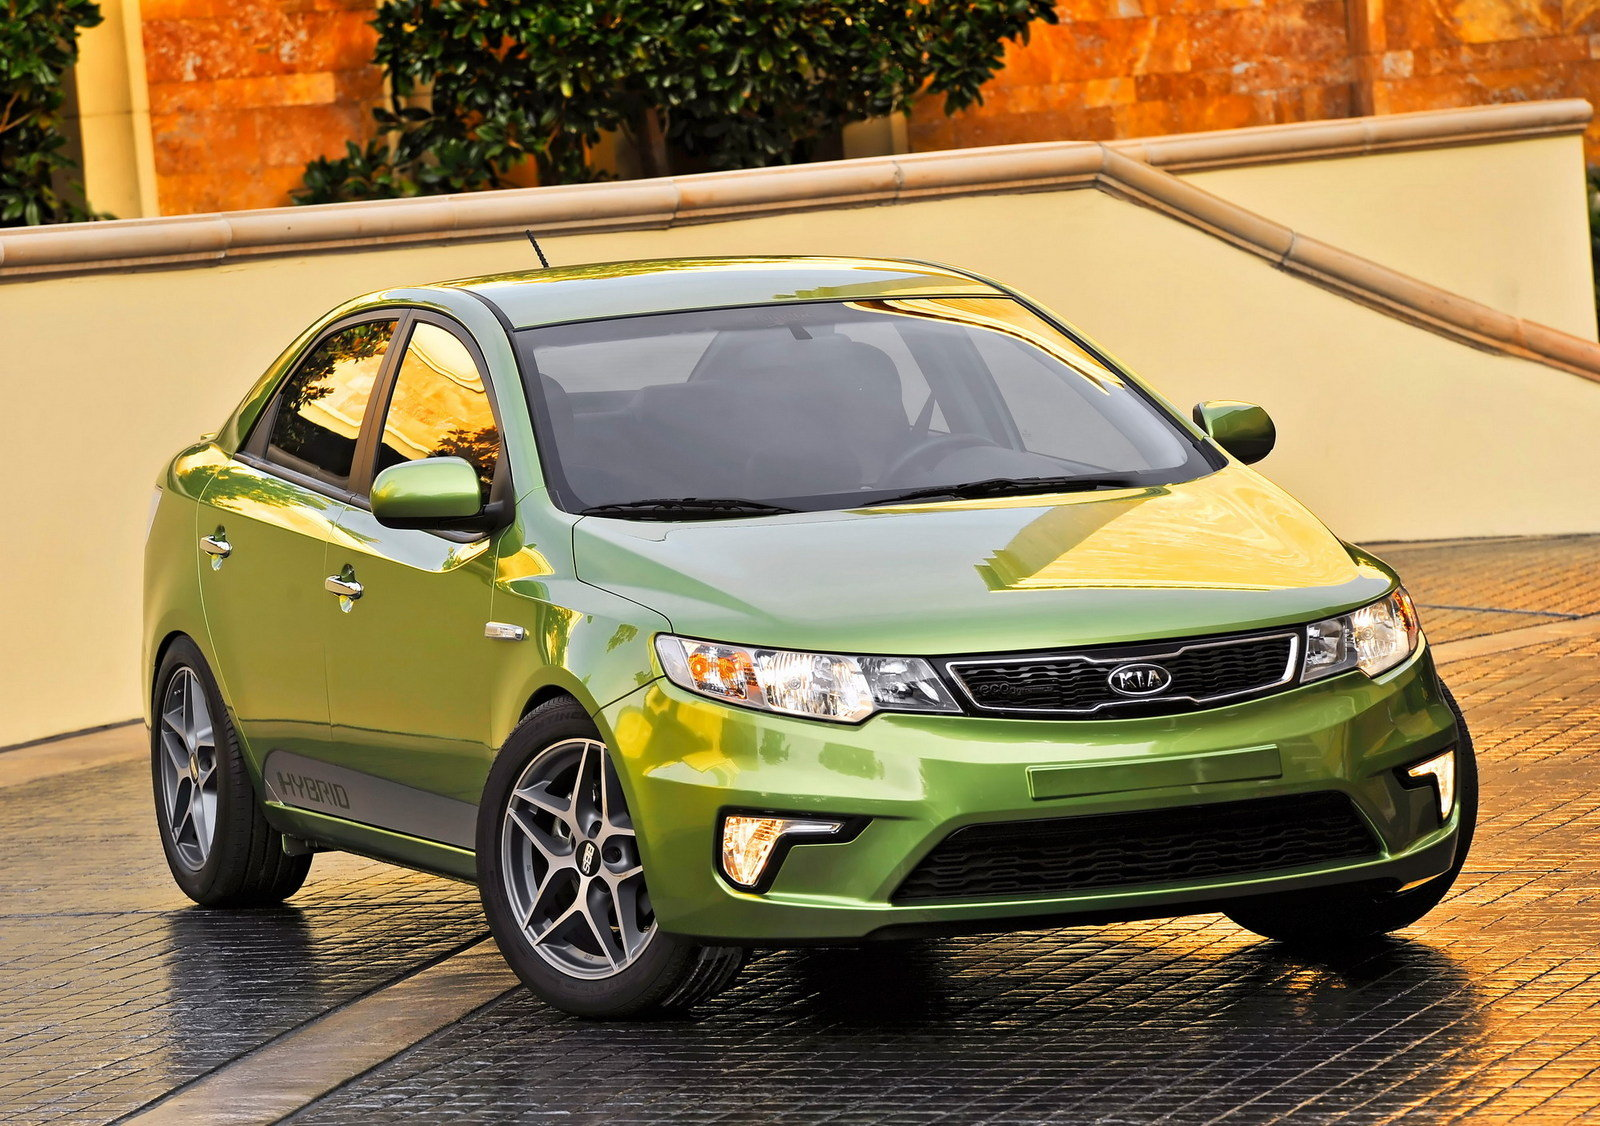 2010 kia forte hybrid review top speed. Black Bedroom Furniture Sets. Home Design Ideas